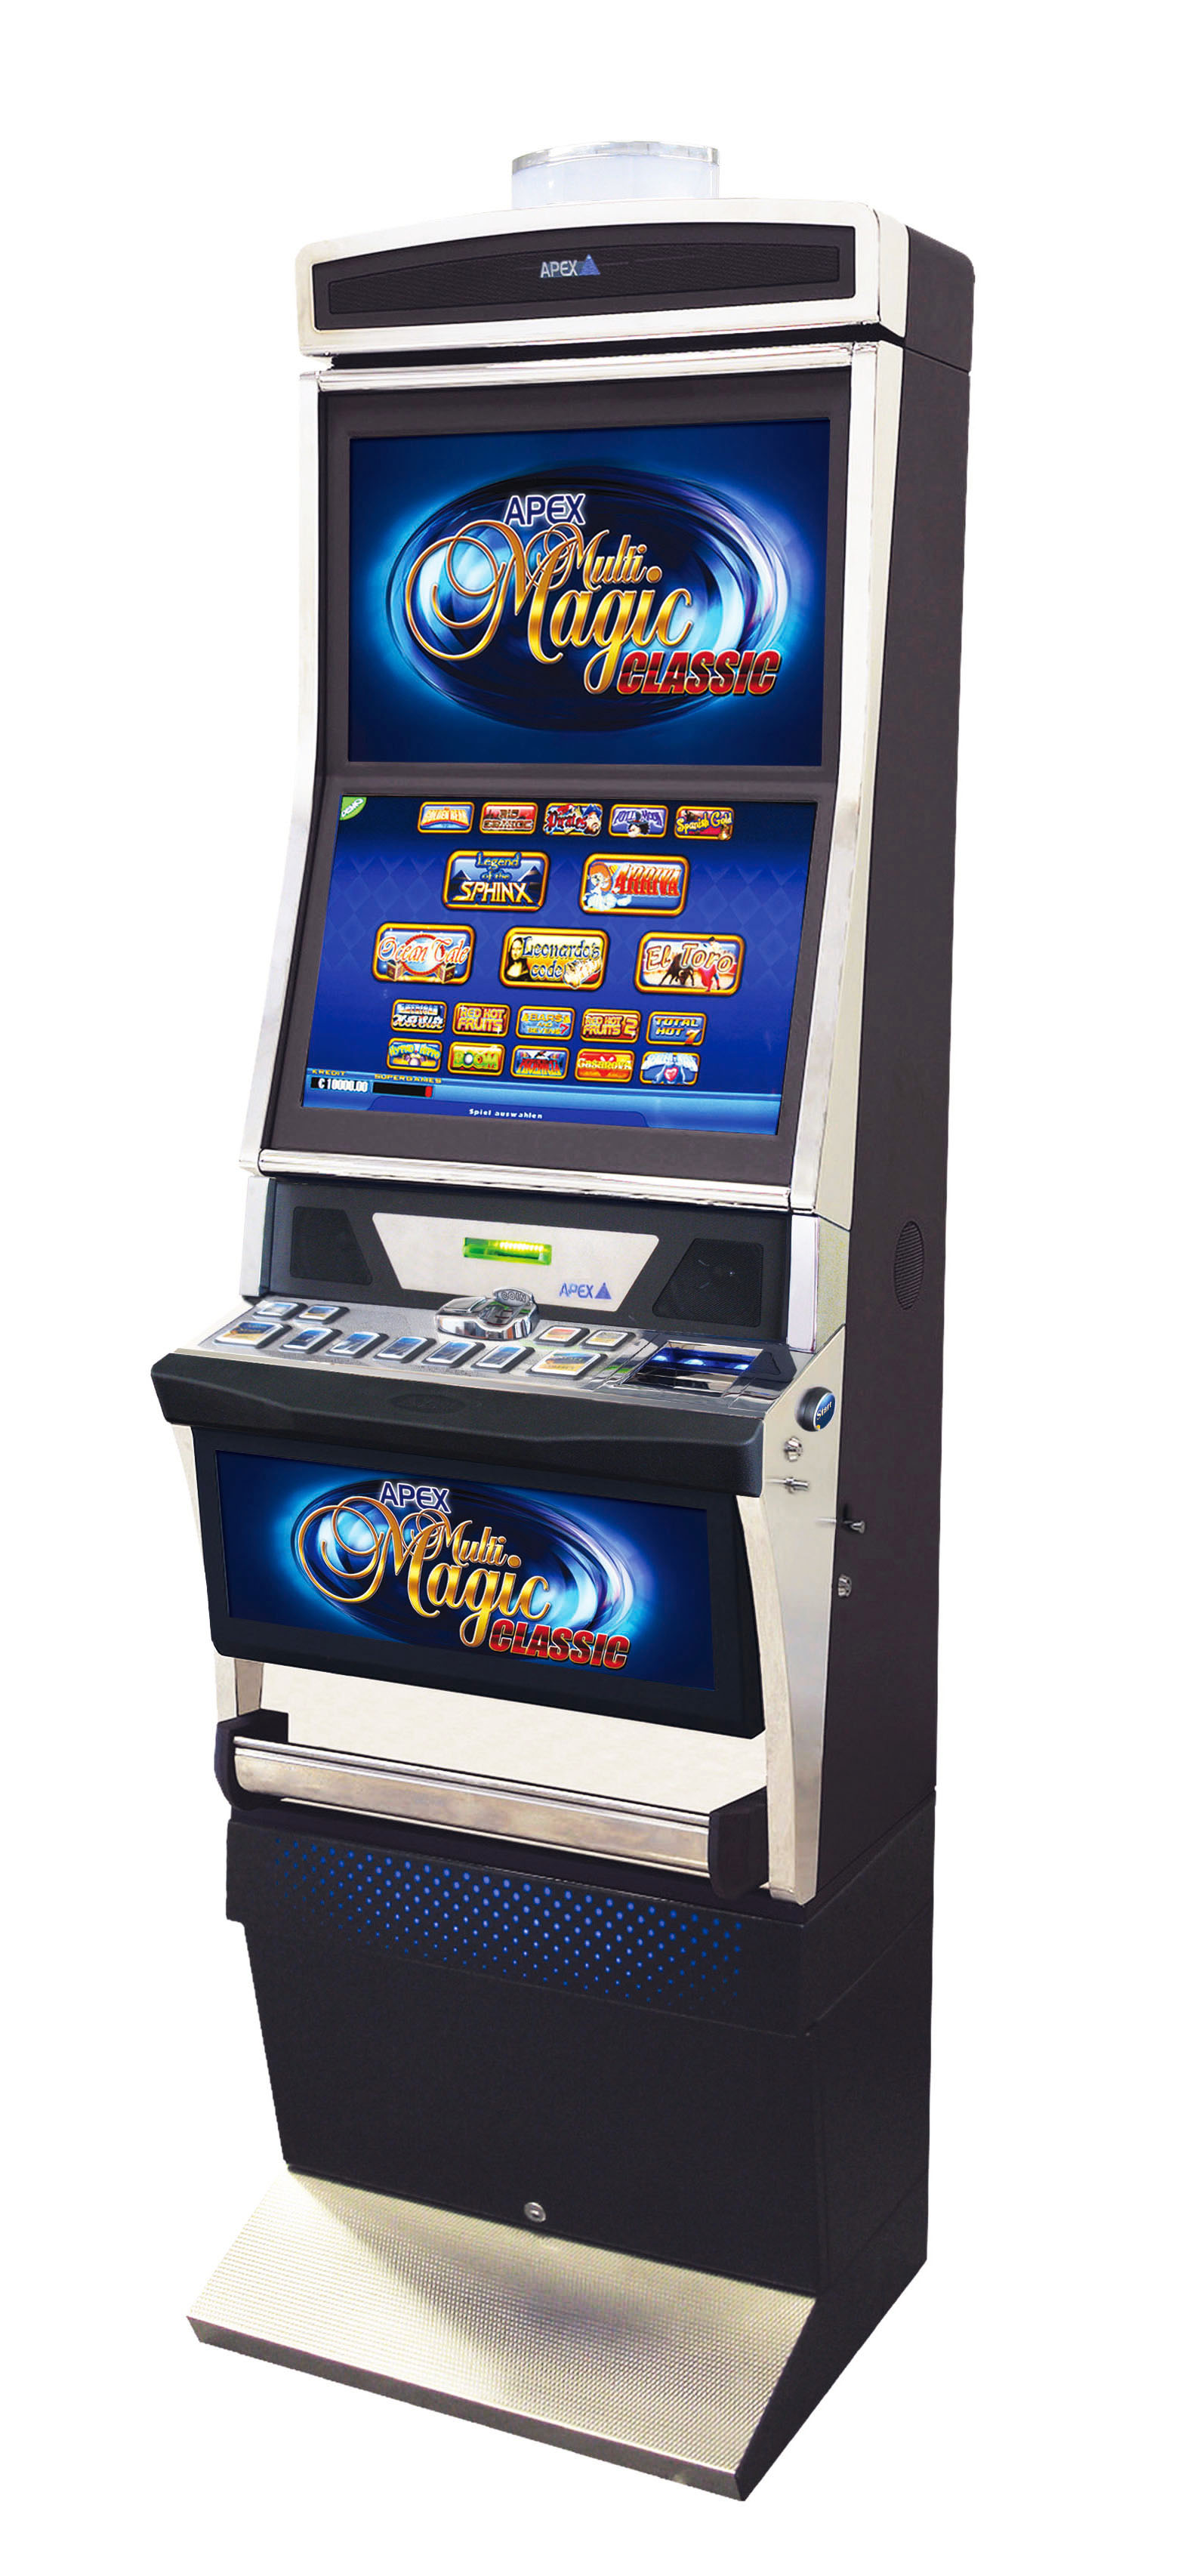 Apex slot machine online